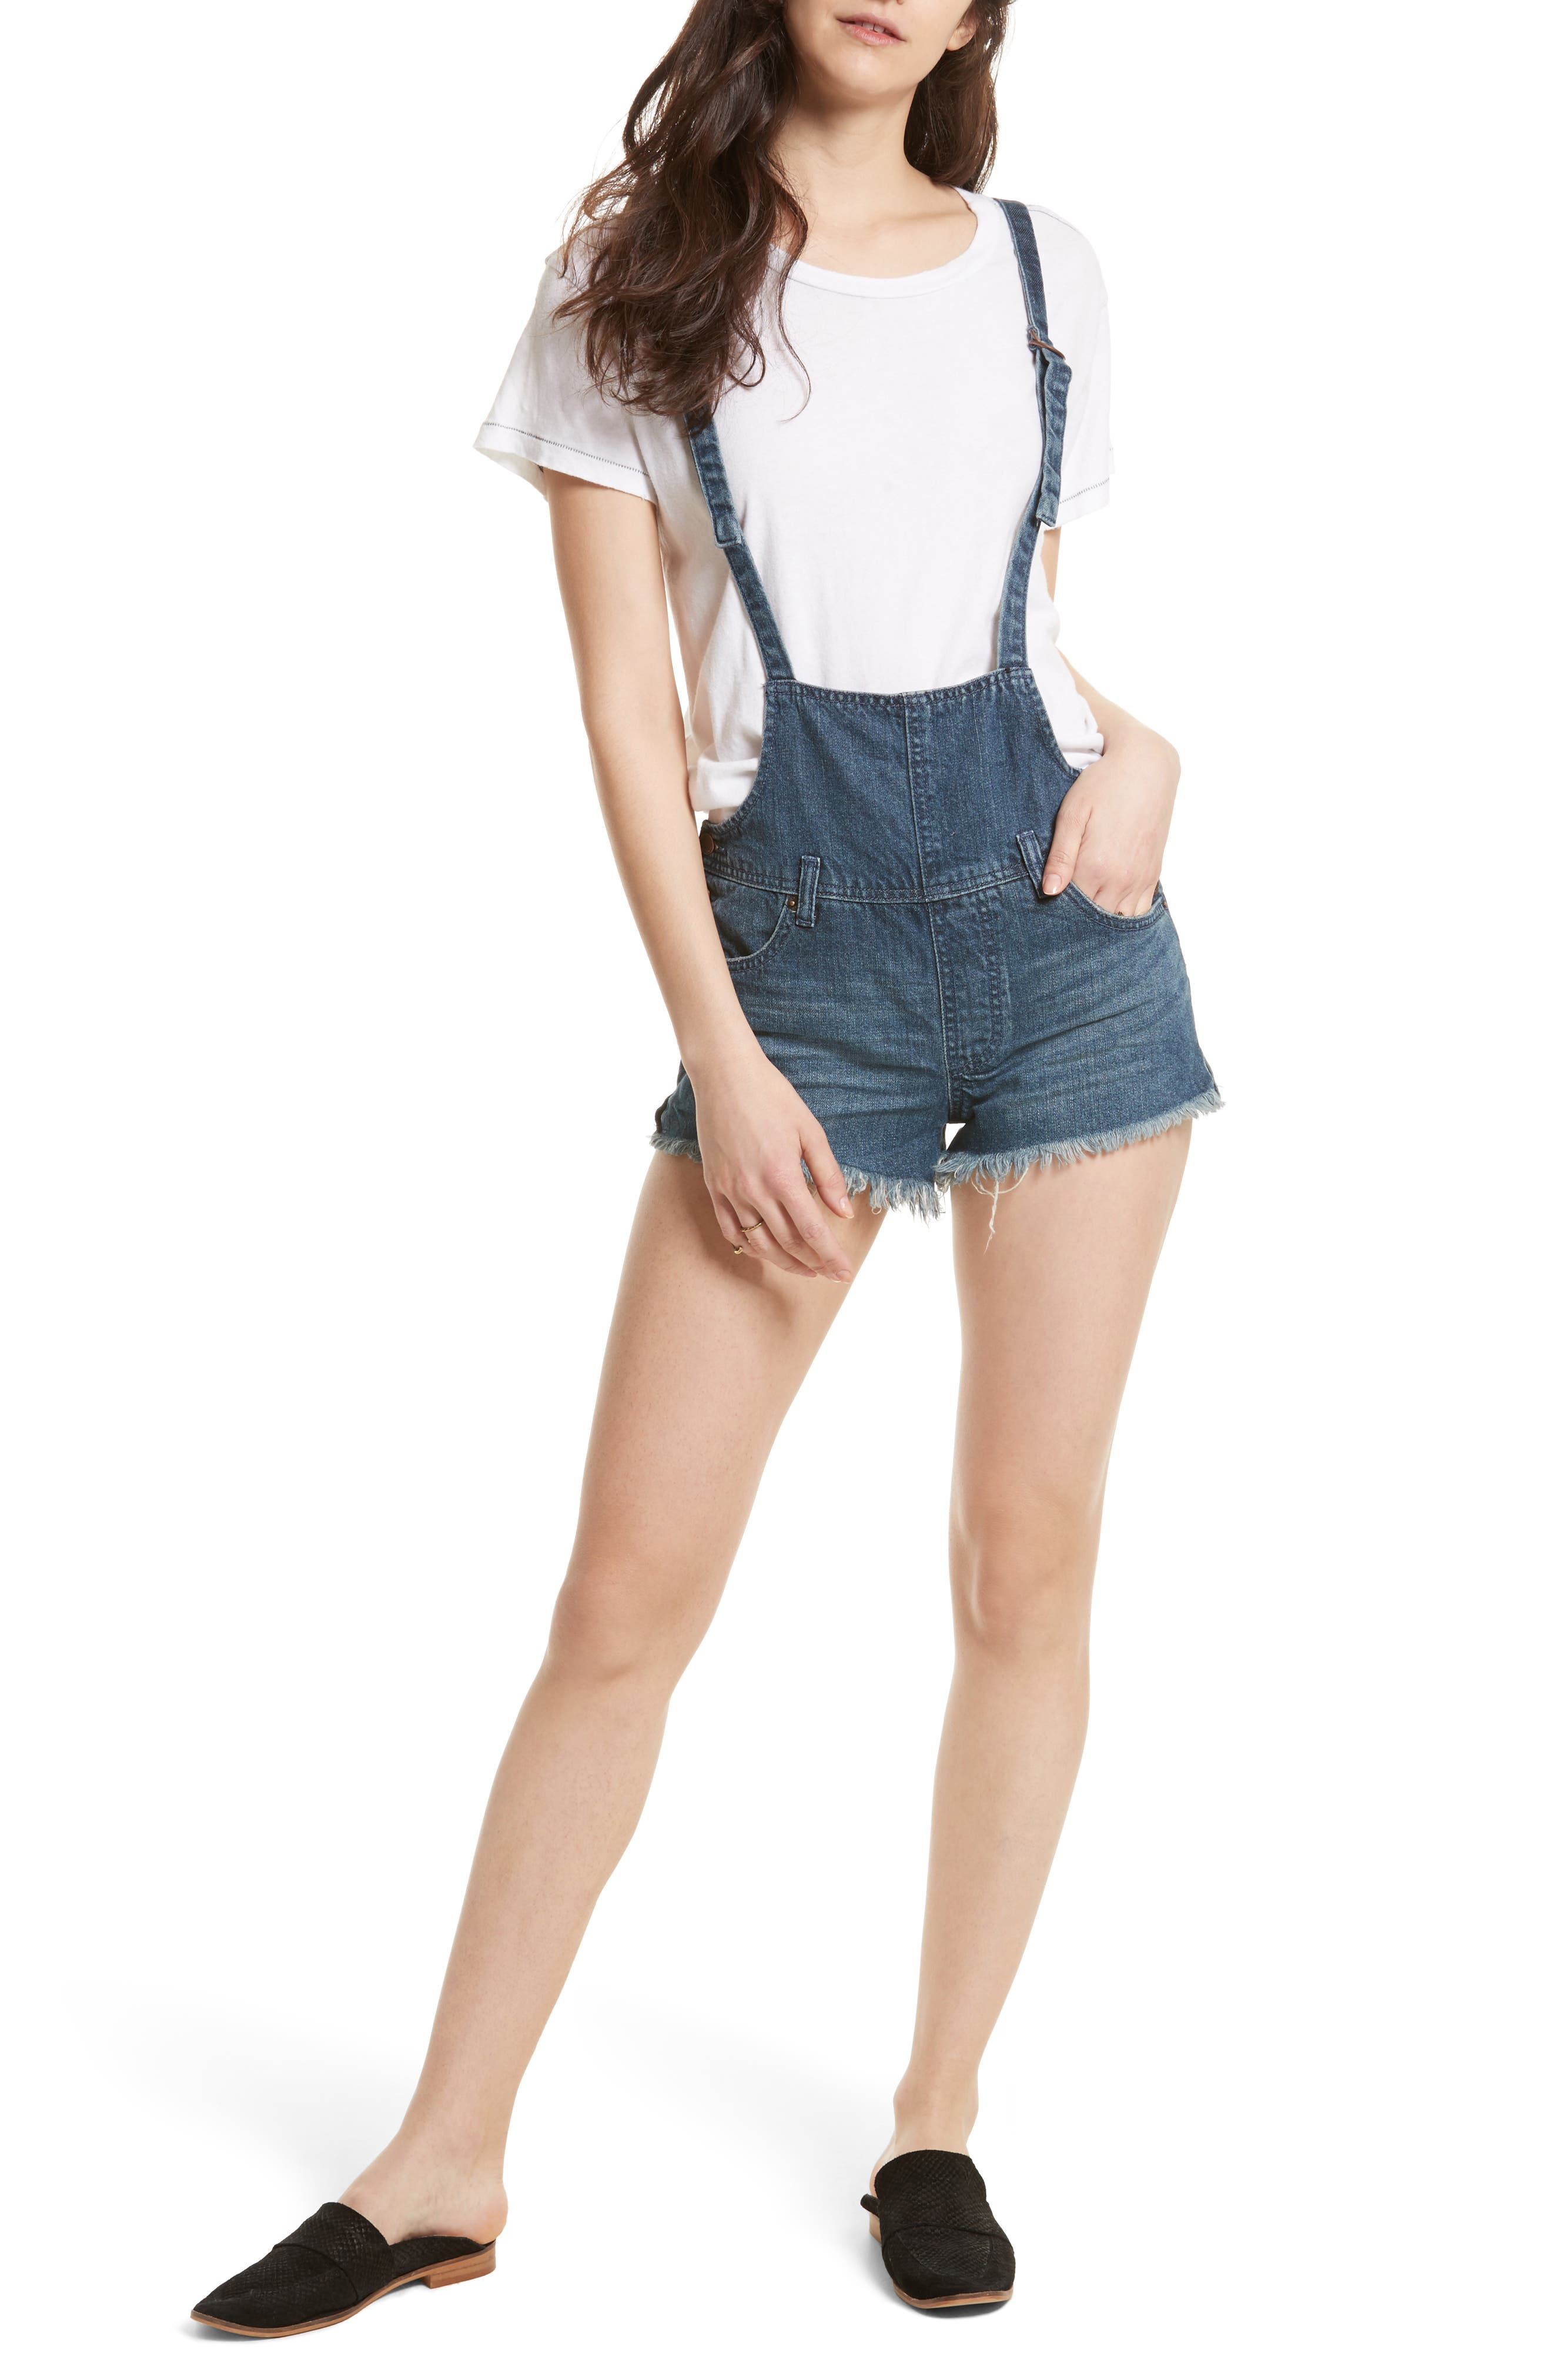 Alternate Image 1 Selected - Free People Strappy Denim Short Overalls